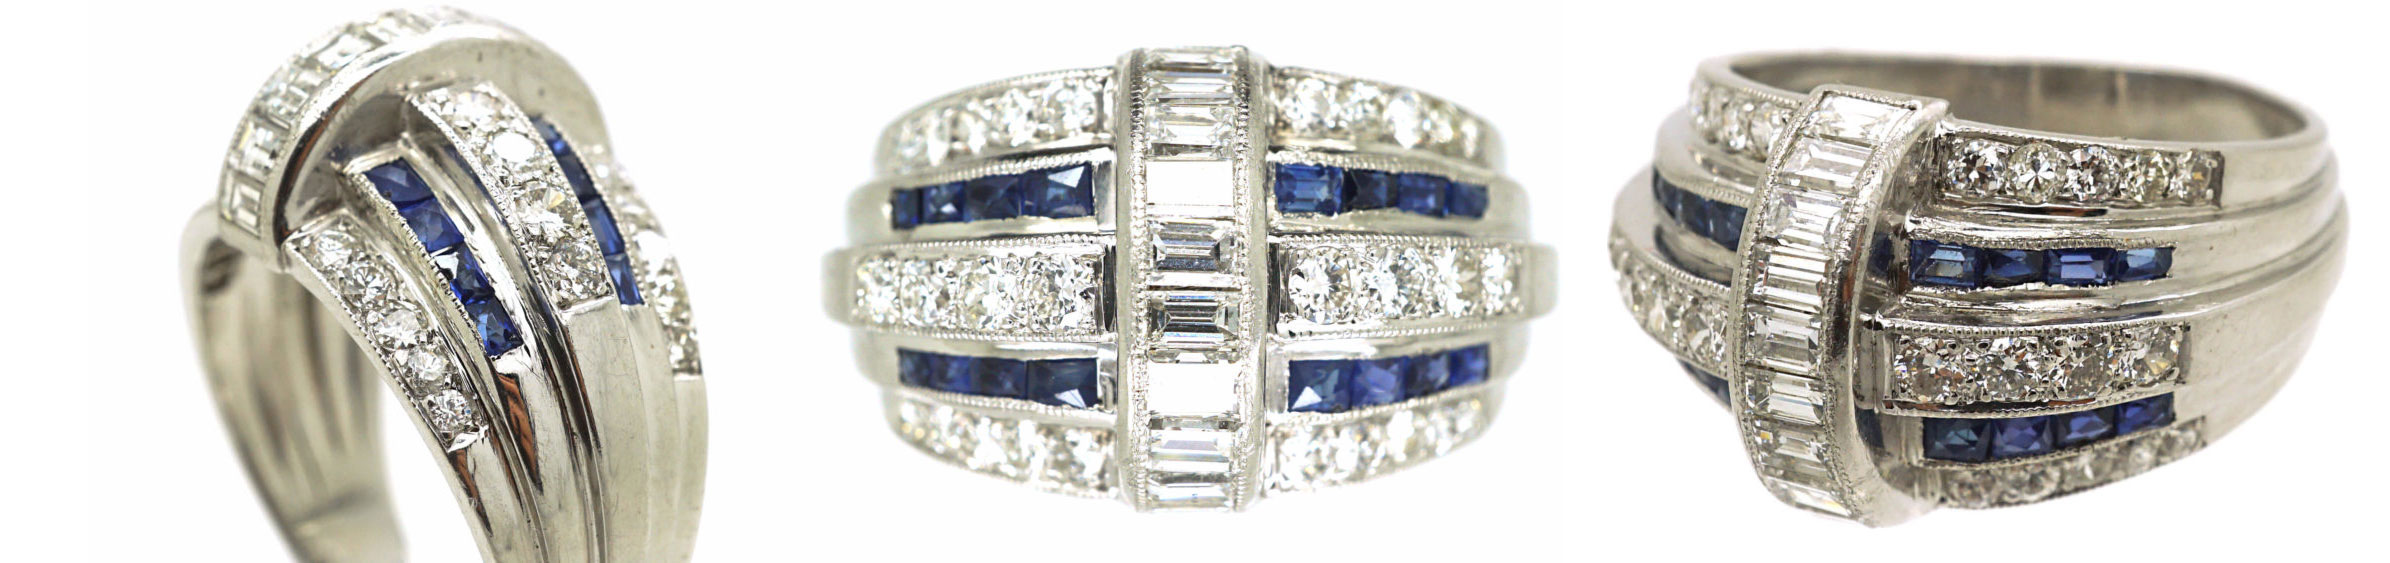 French Platinum, French Cut Sapphires & Diamond Bombé Ring